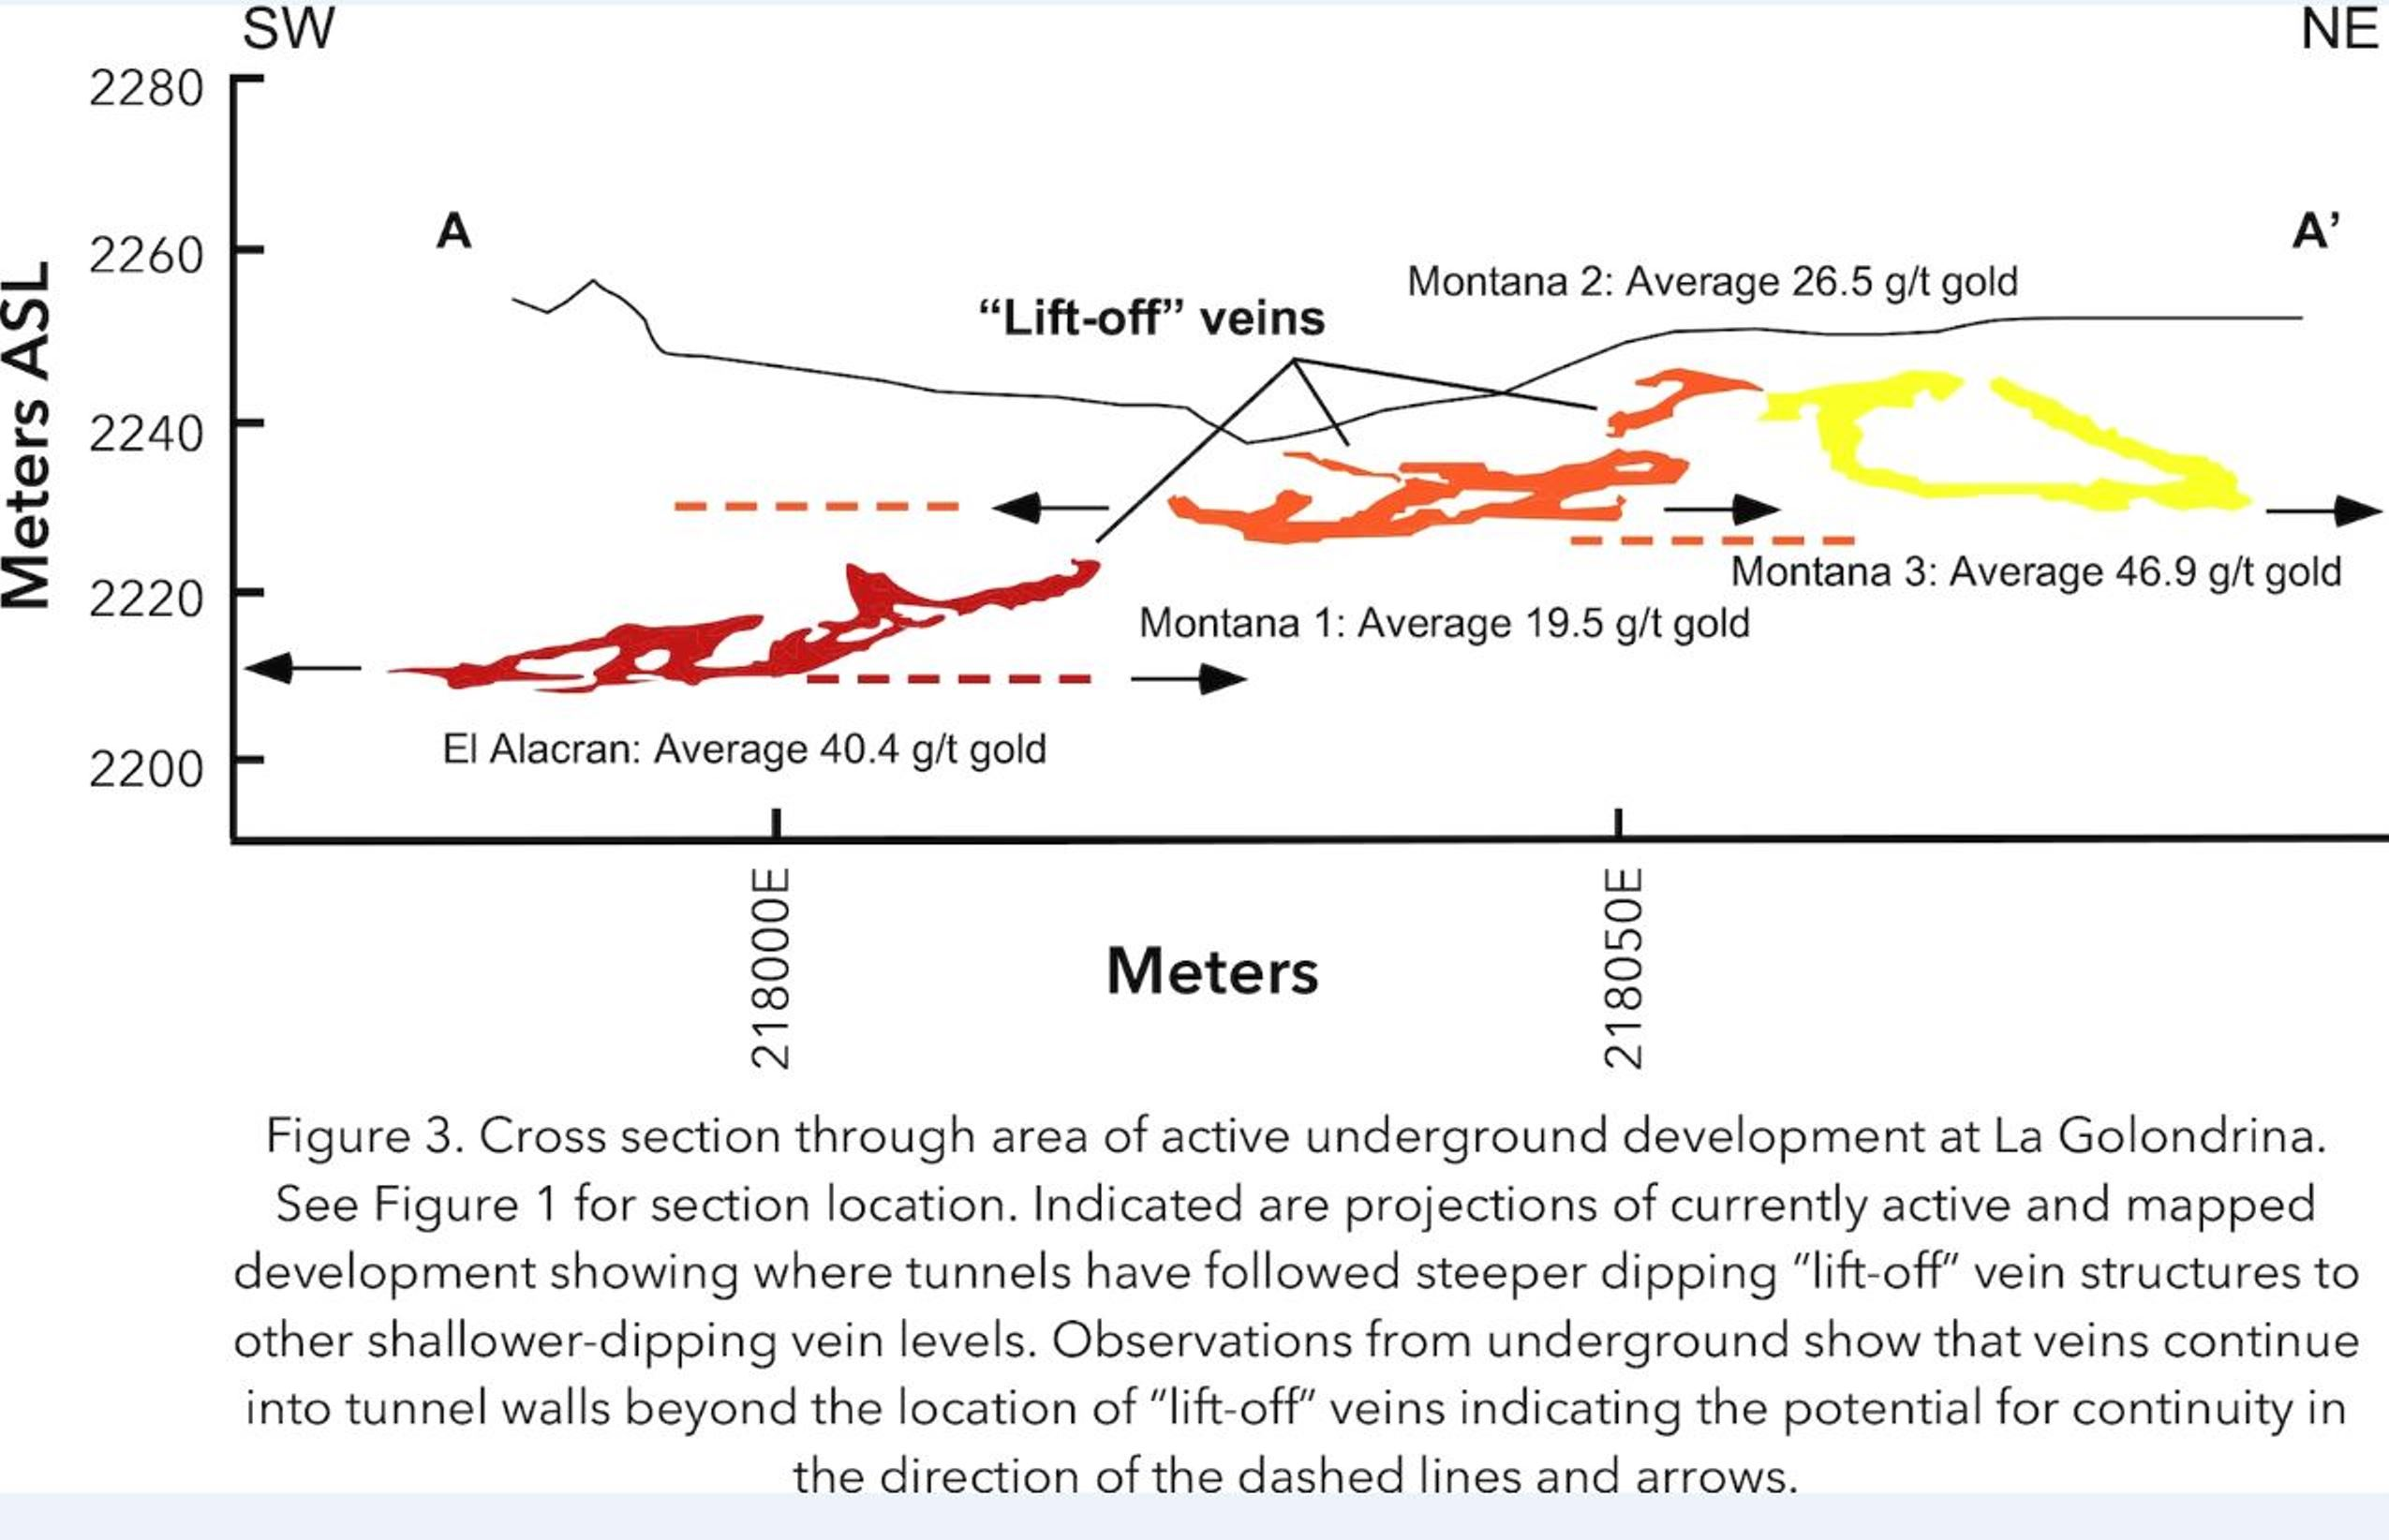 "Figure 3. Cross section through area of active underground development at La Golondrina. See Figure 1 for section location. Indicated are projections of currently active and mapped development showing where tunnels have followed steeper dipping ""lift-off"" vein structures to other shallower-dipping vein levels. Observations from underground show that veins continue into tunnel walls beyond the location of ""lift-off"" veins indicating the potential for continuity in the direction of the dashed lines and arrows."